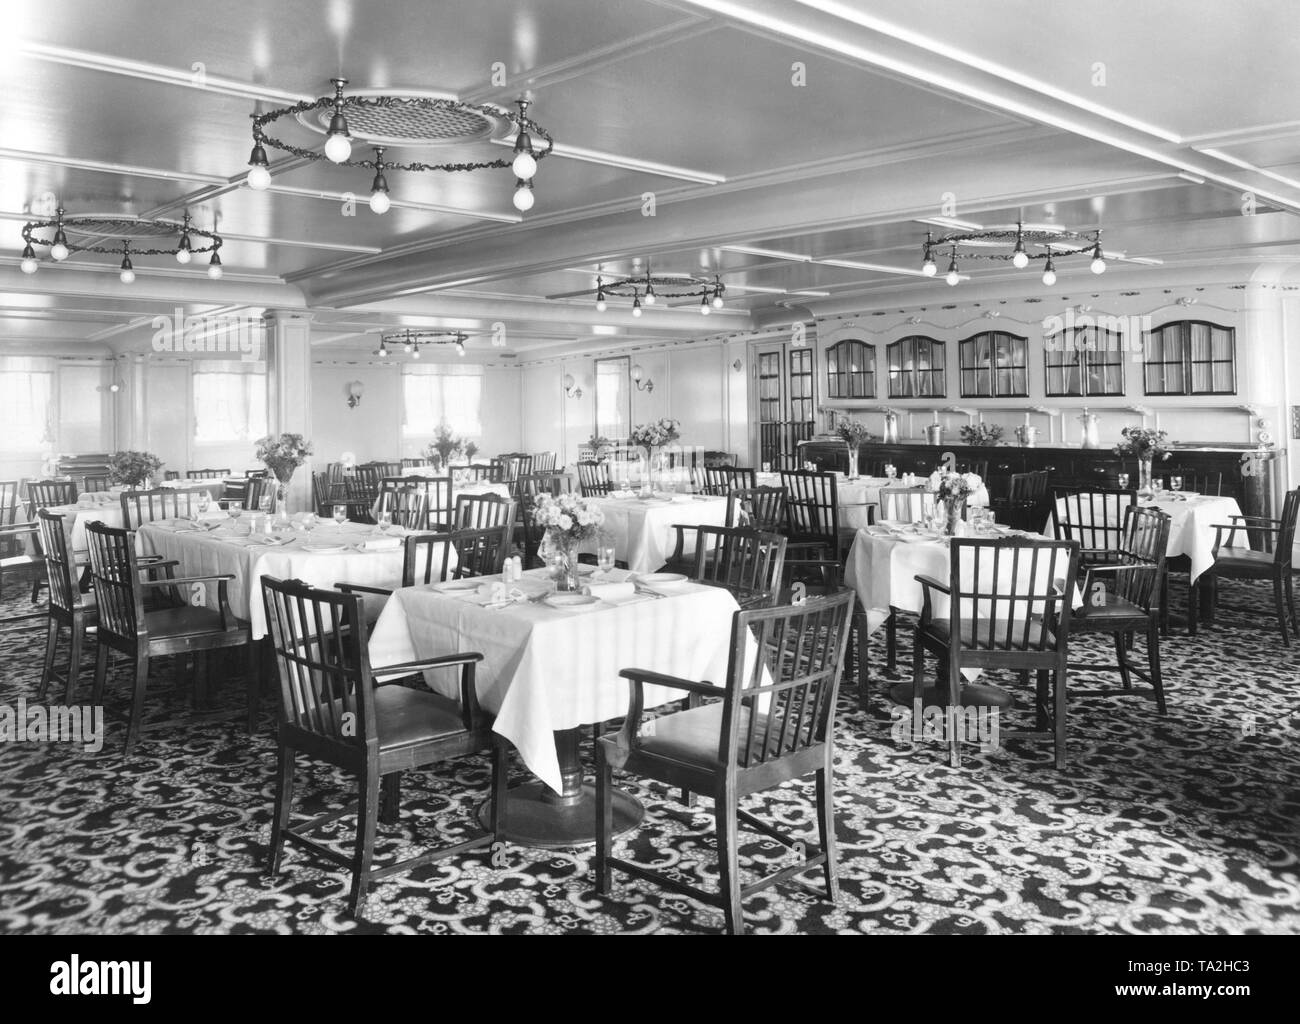 The dining room of the middle class of the passenger steamer 'General San Martin'. - Stock Image